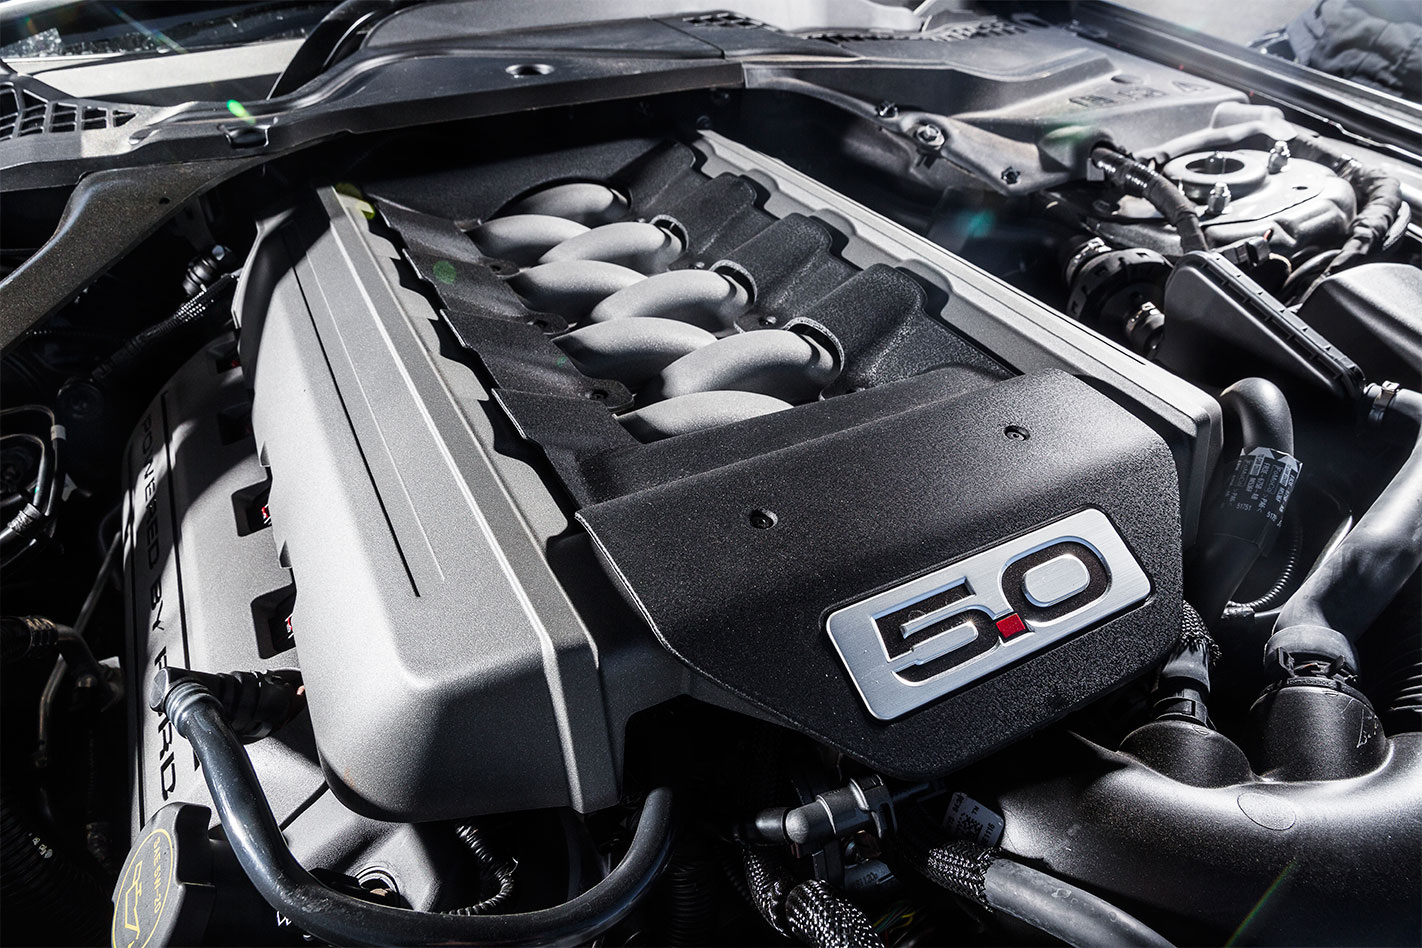 2017 Ford Mustang engine